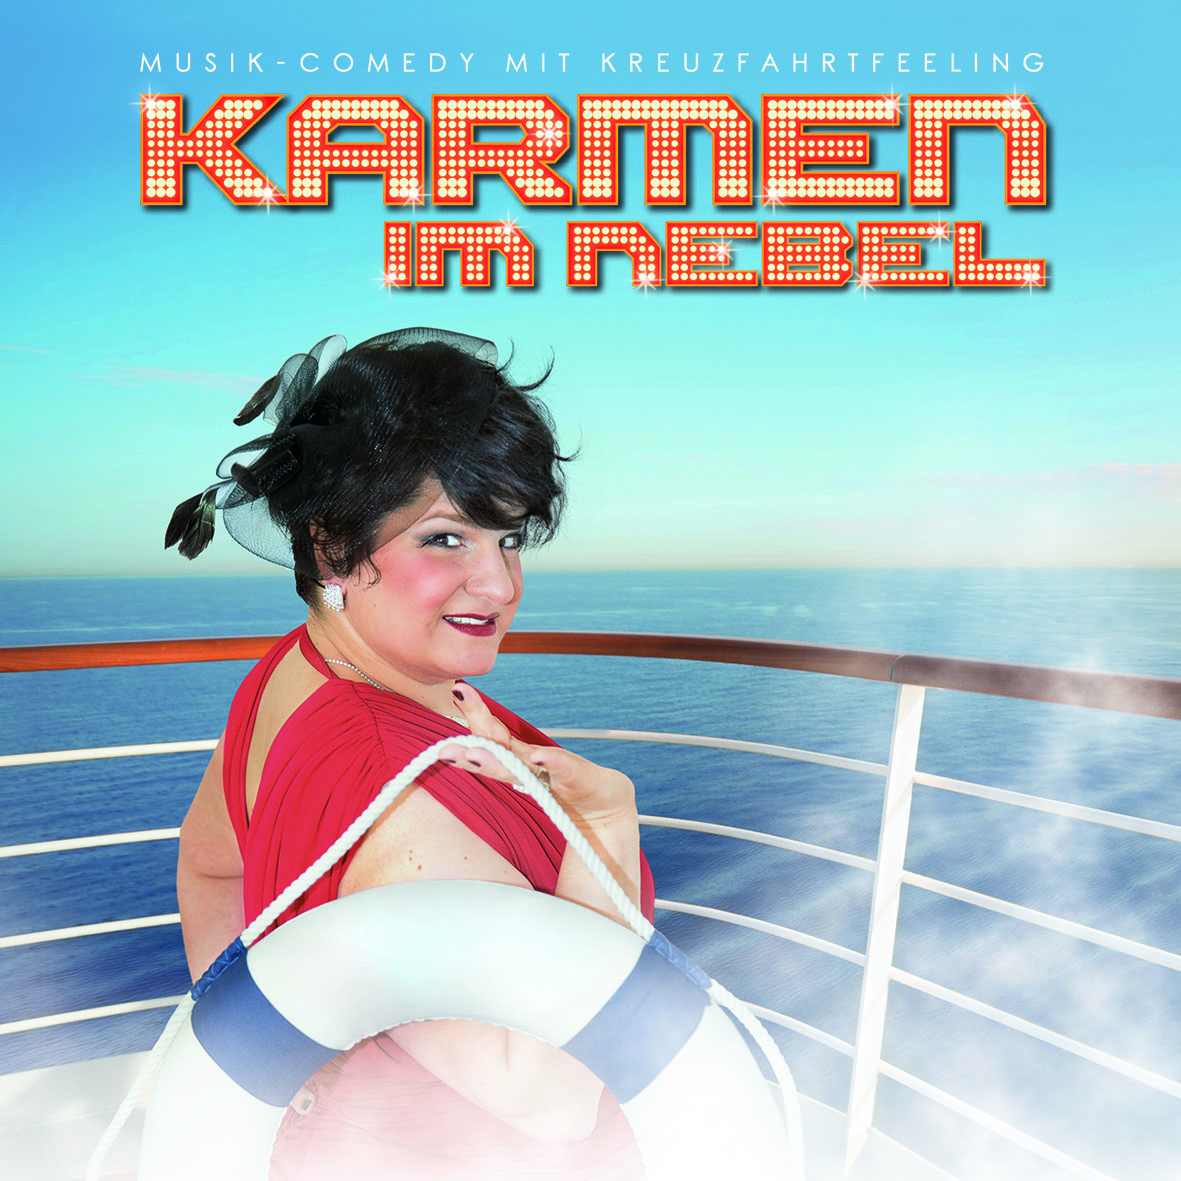 KARMEN IM NEBEL - ONE NIGHT OF KARMEN